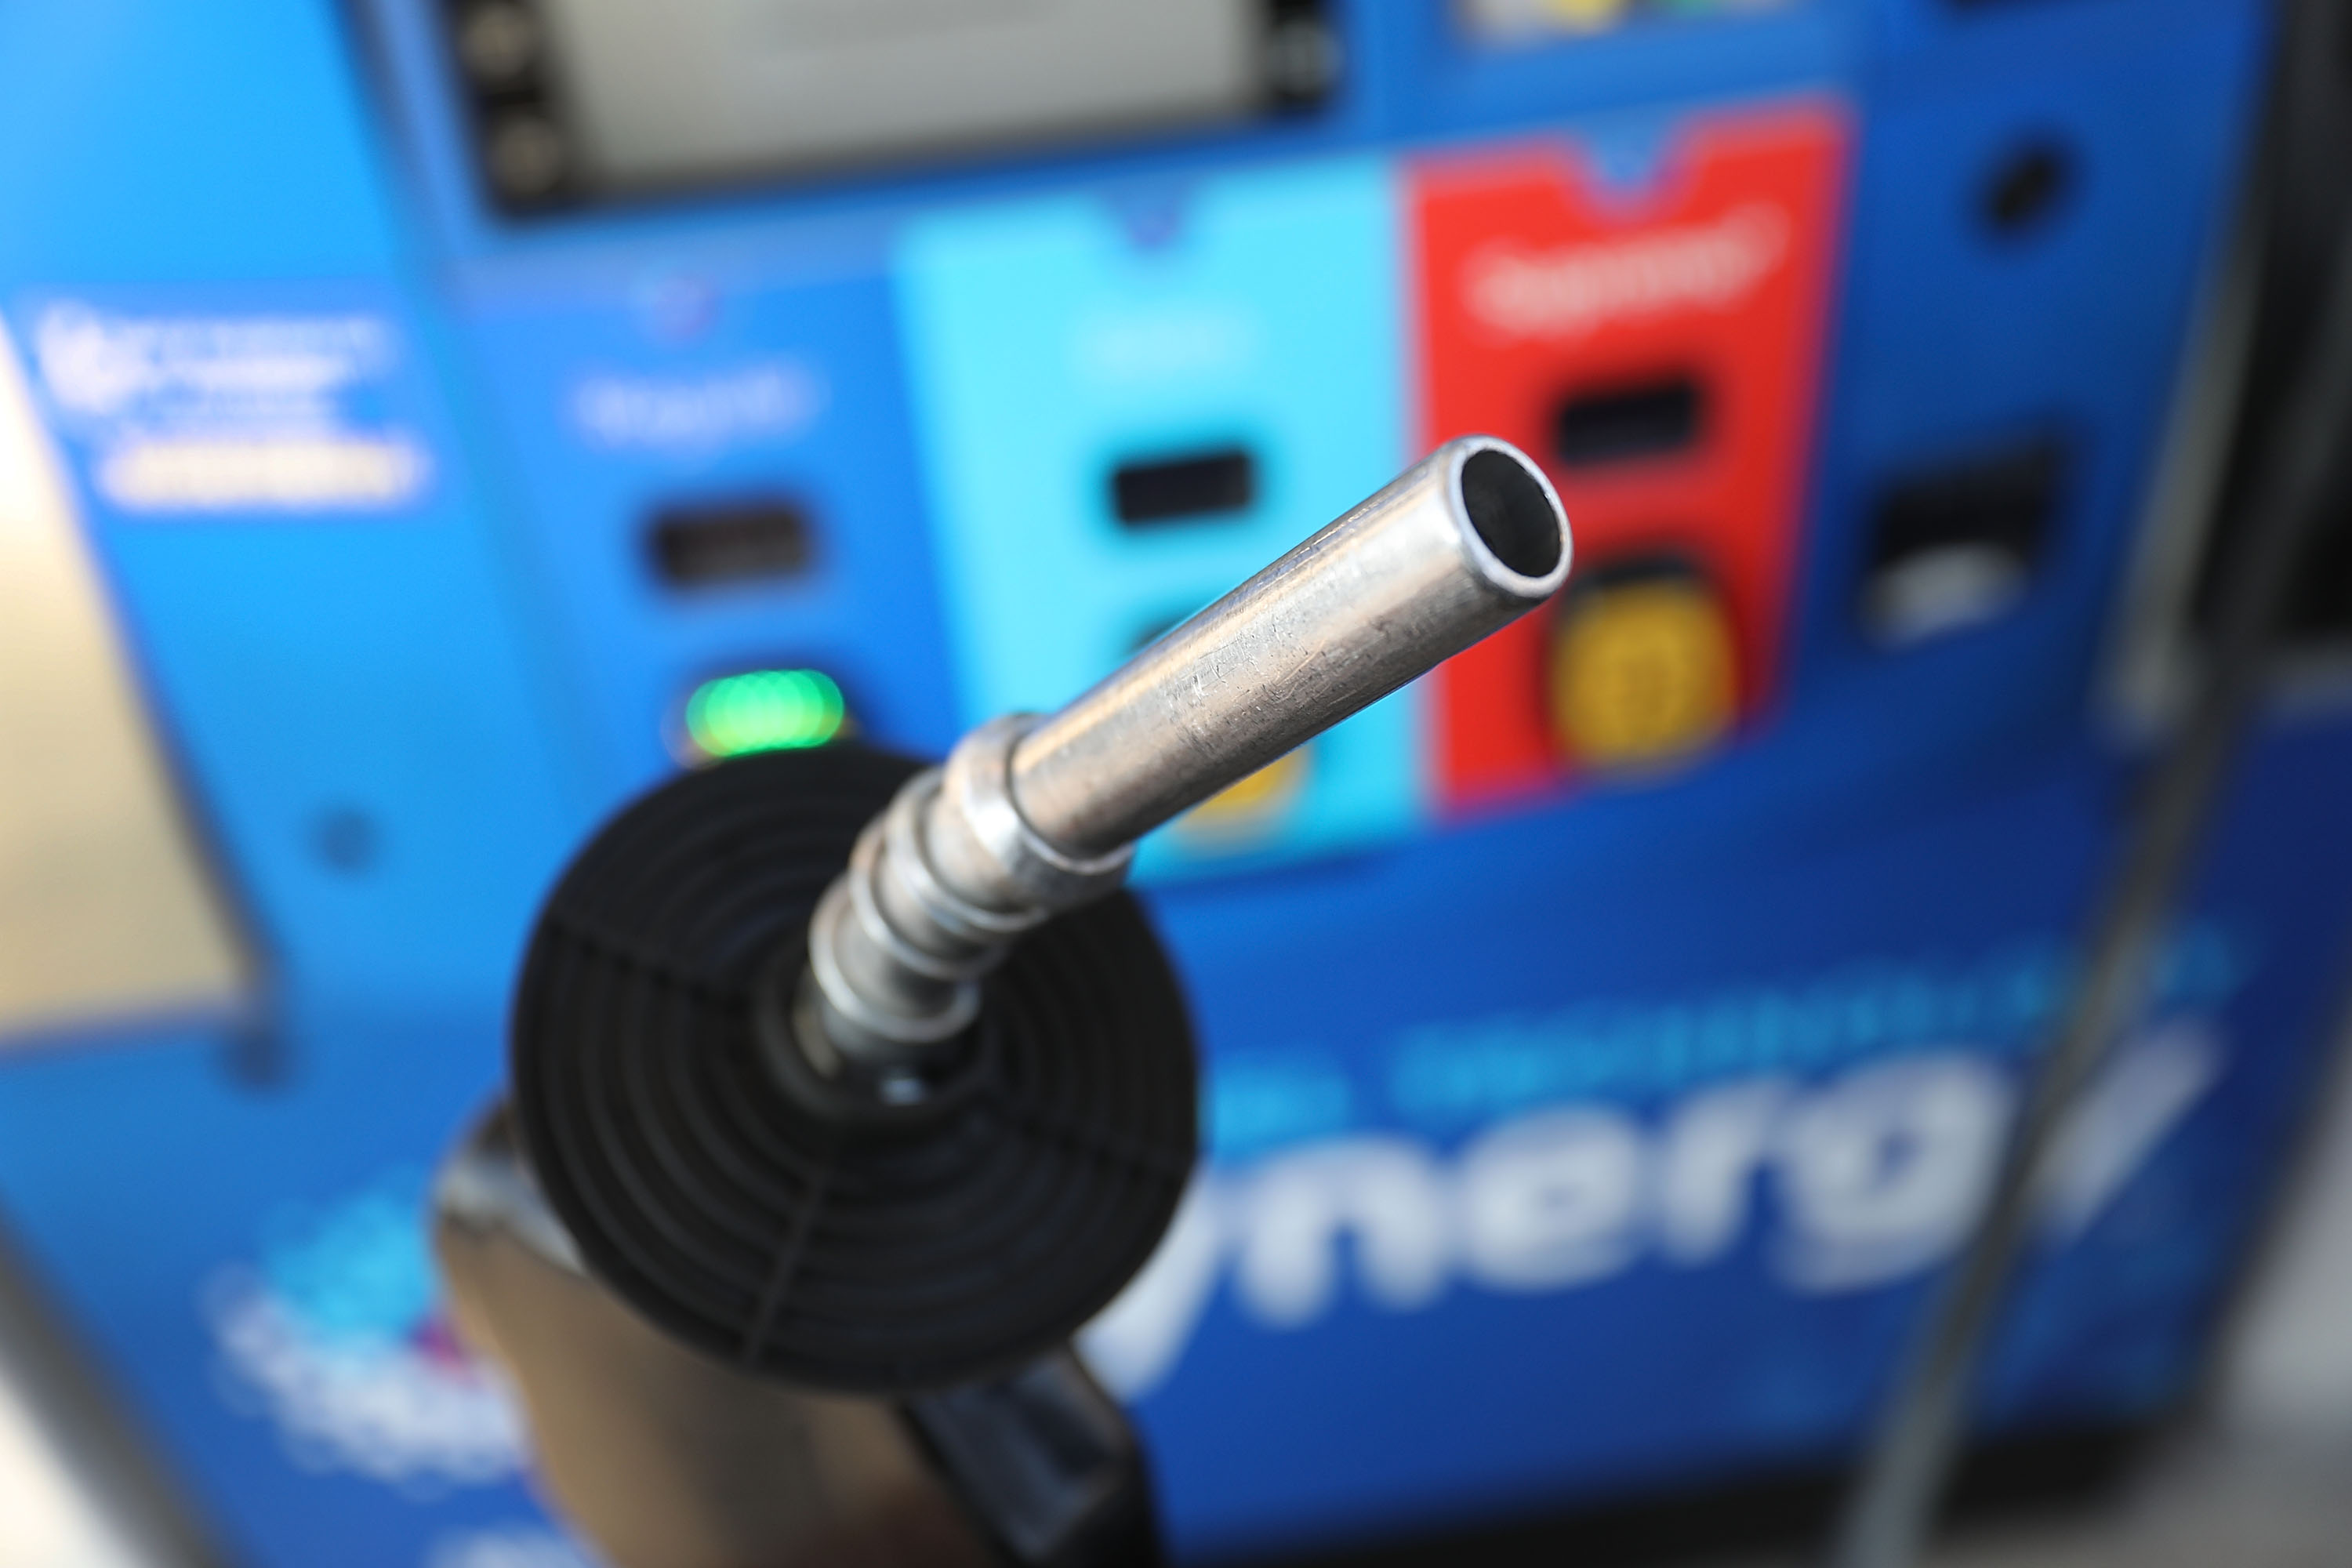 You're going to pay a lot more at the gas station if Trump kills the Iran deal